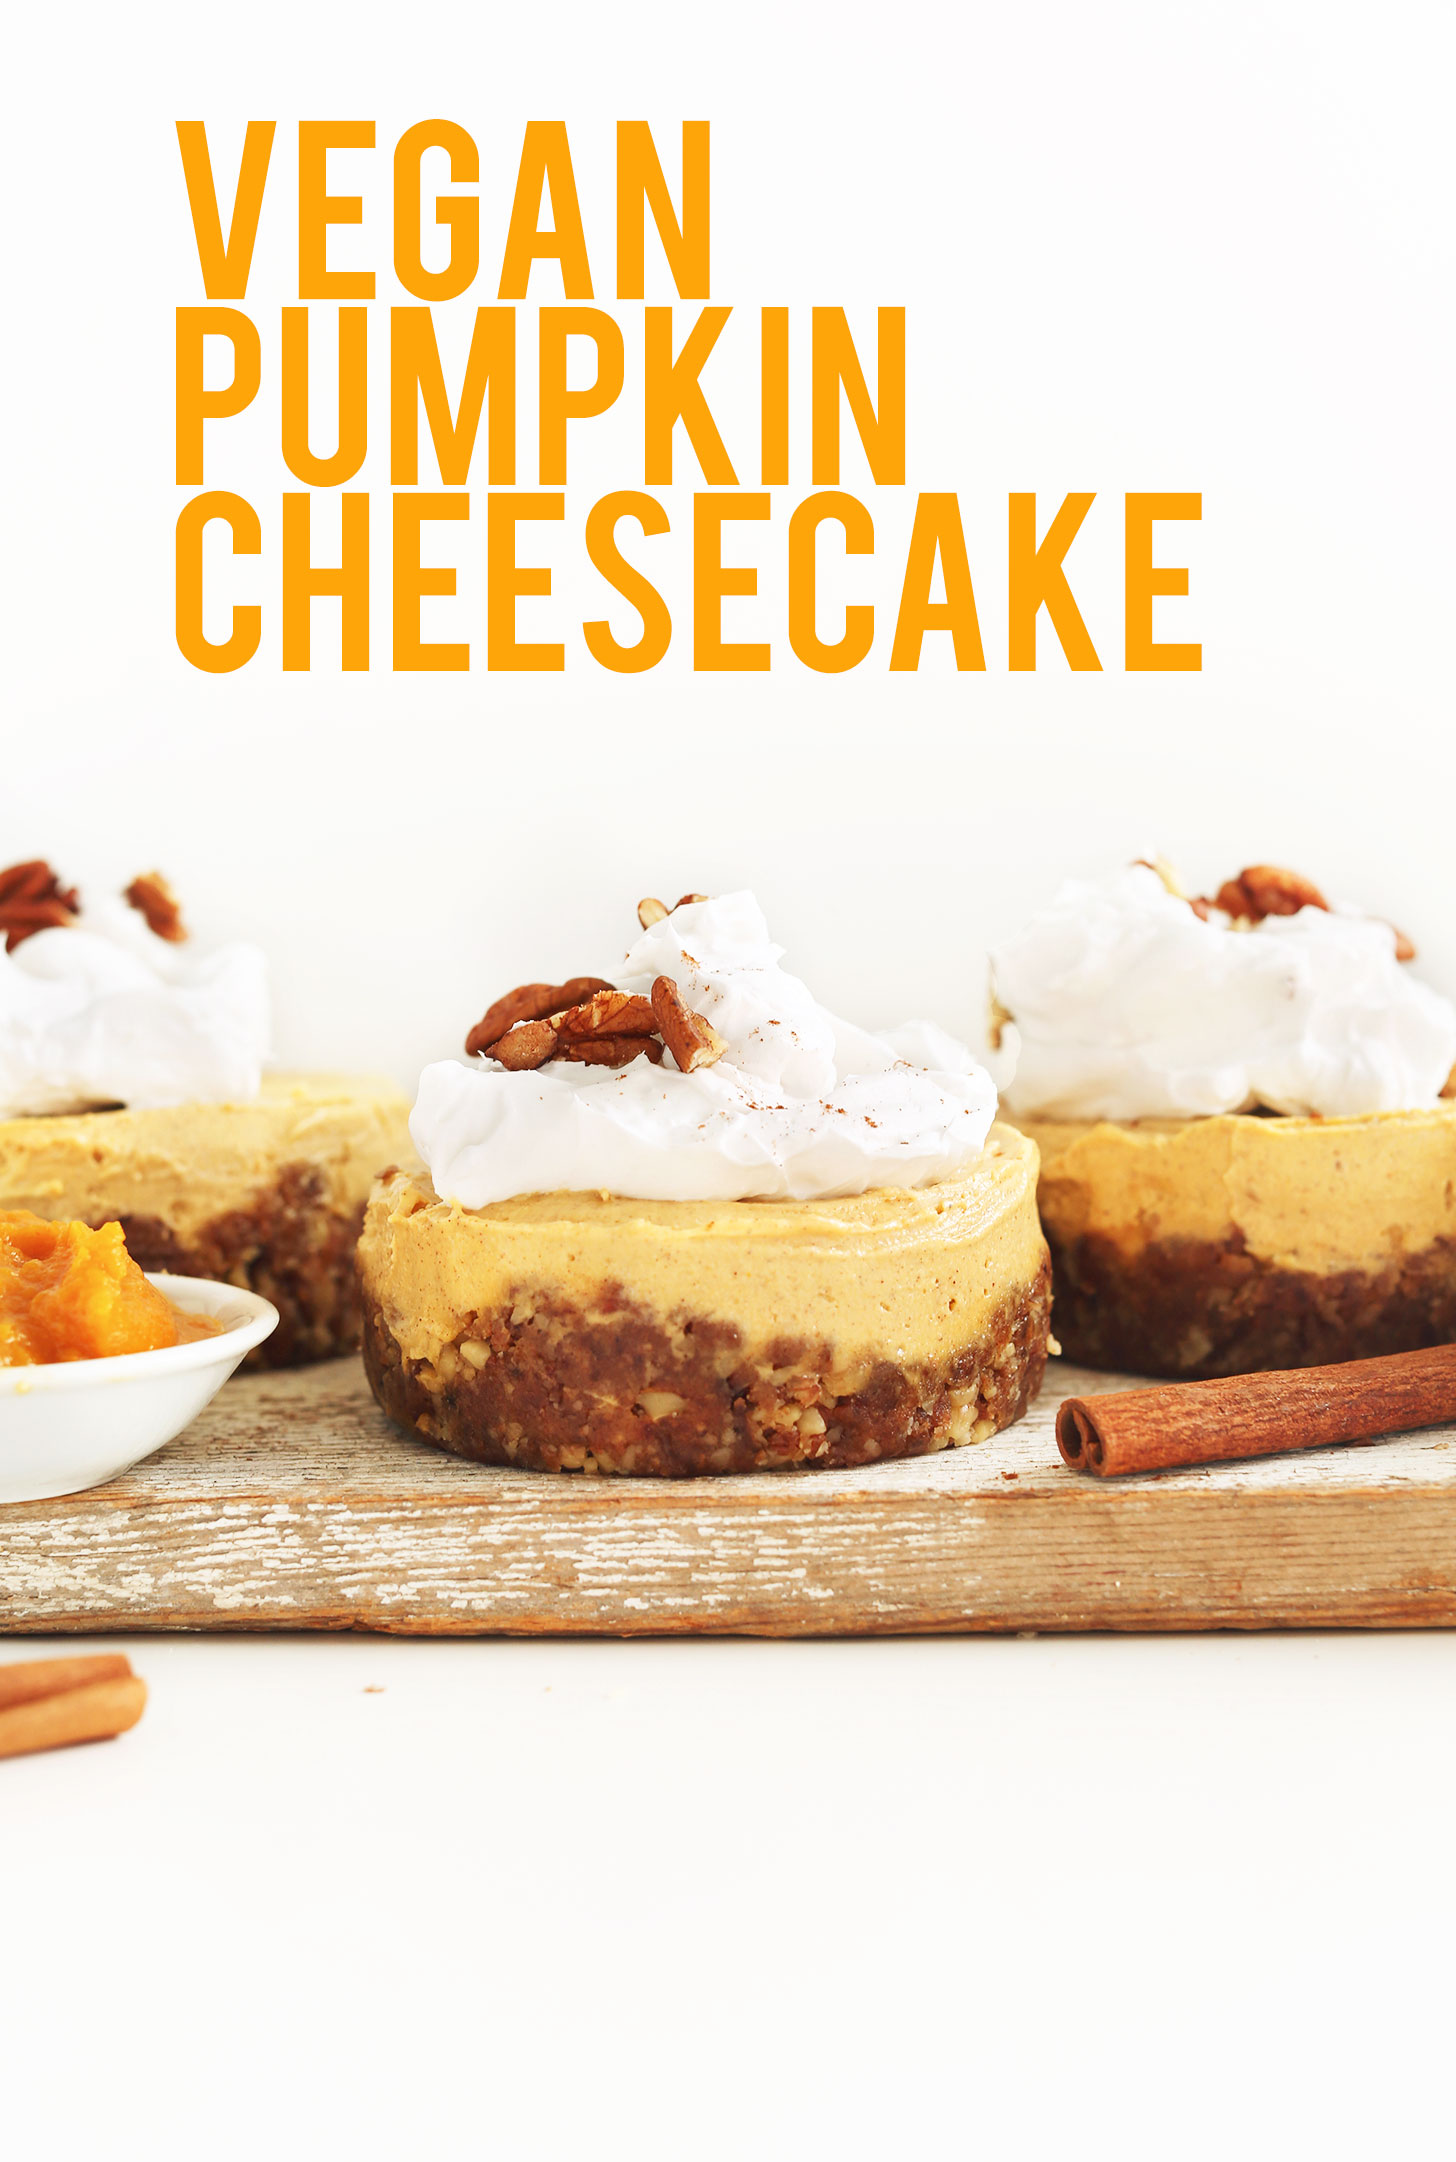 Cutting board with mini vegan pumpkin cheesecakes for a delicious fall dessert